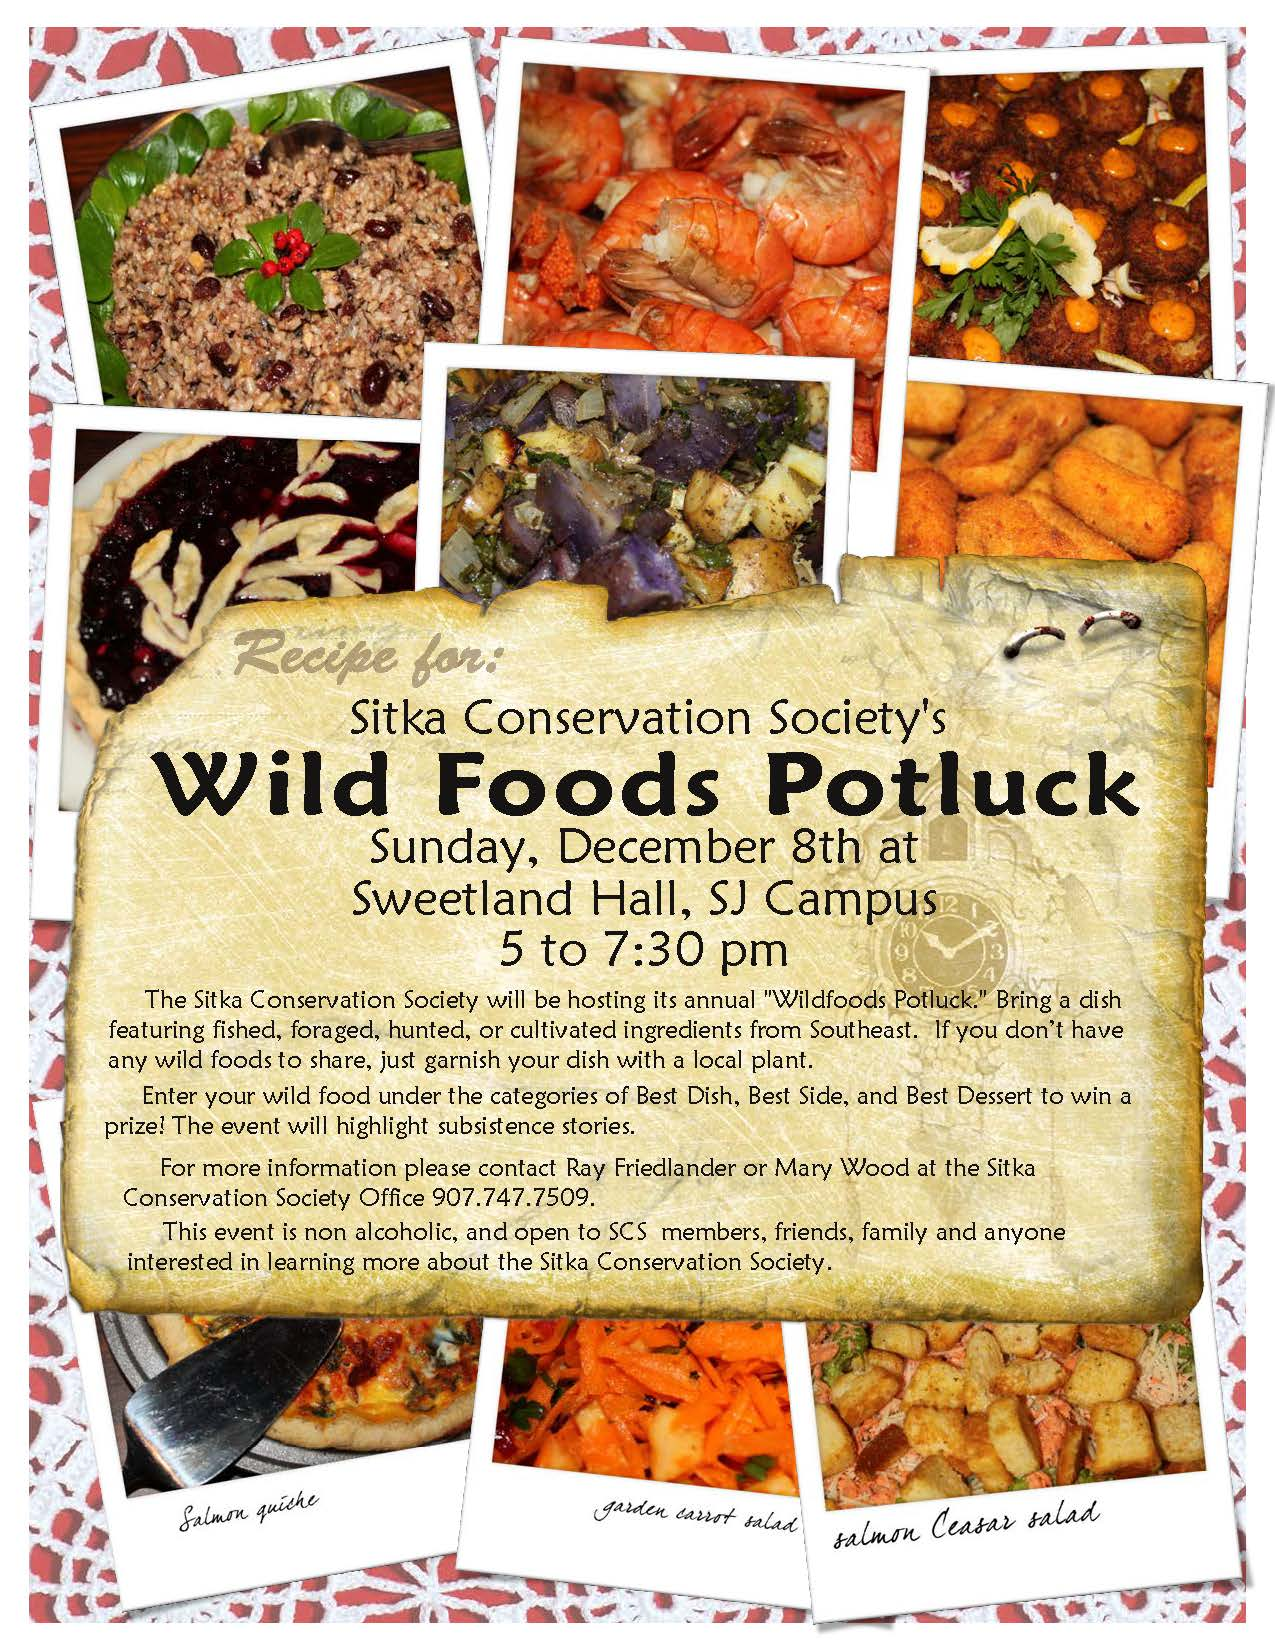 Wild Foods Potluck no words